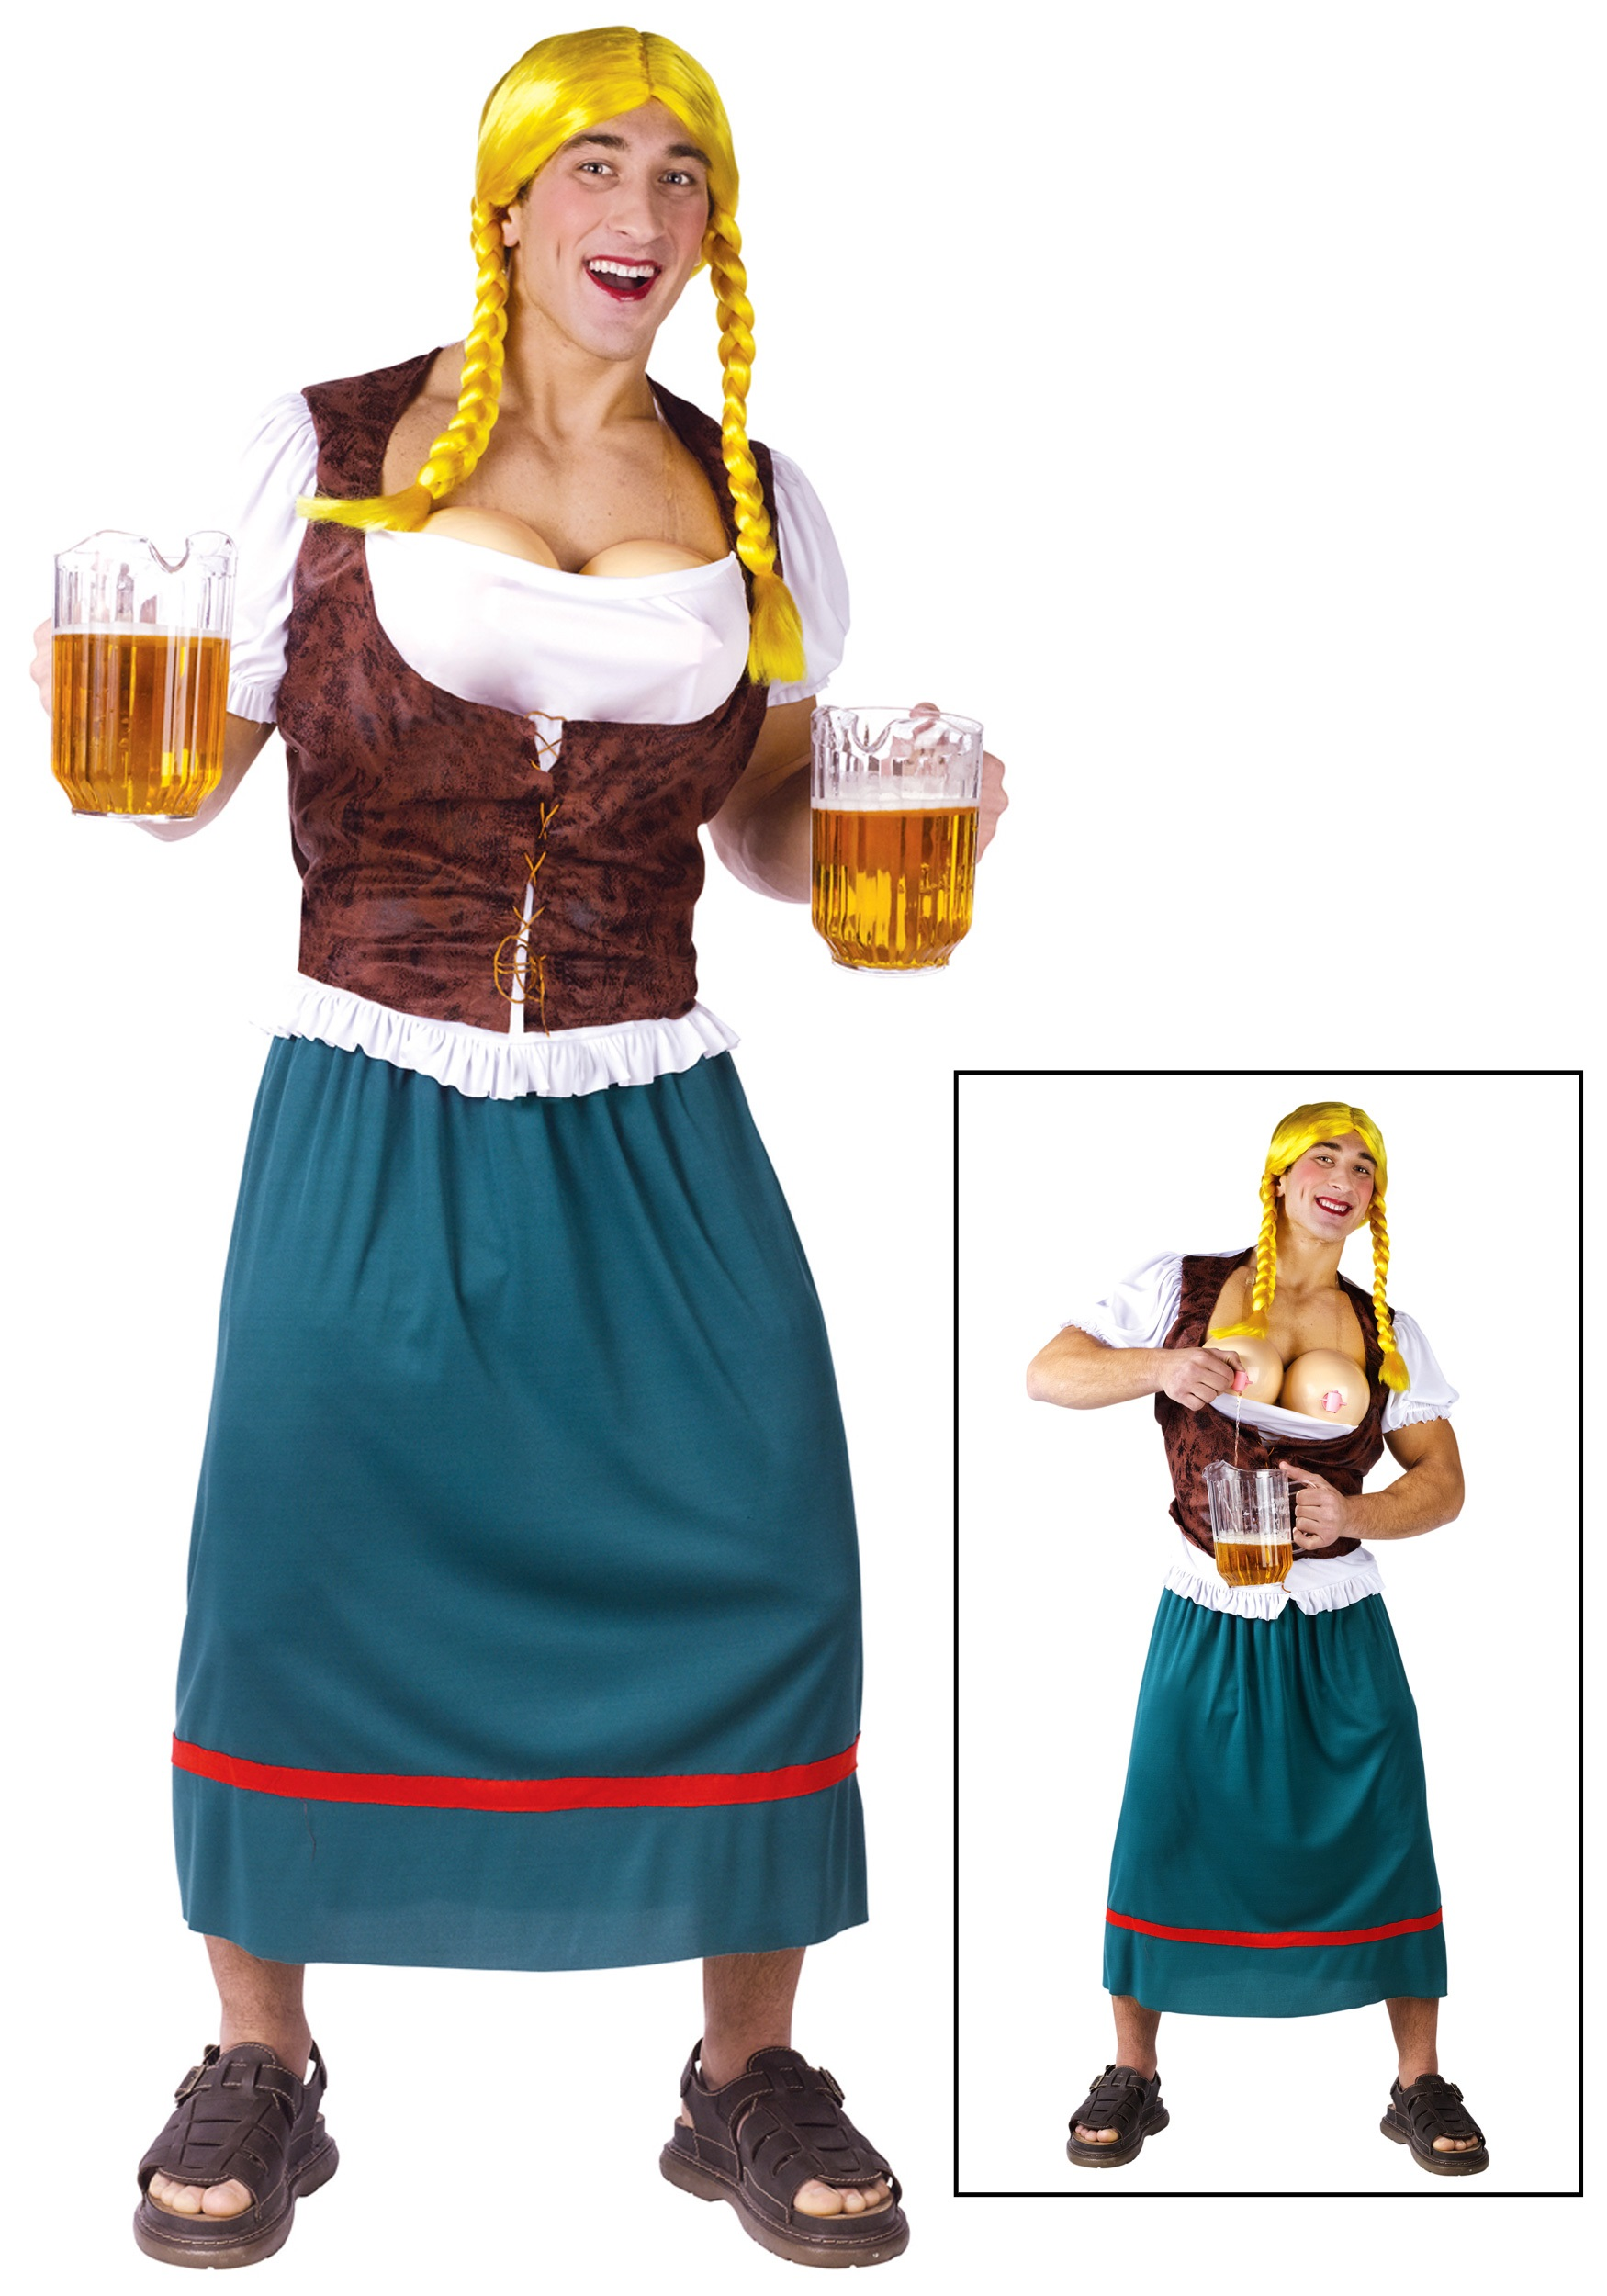 German man wearing traditional german clothing clipart graphic black and white stock Mens German Beer Girl Costume graphic black and white stock